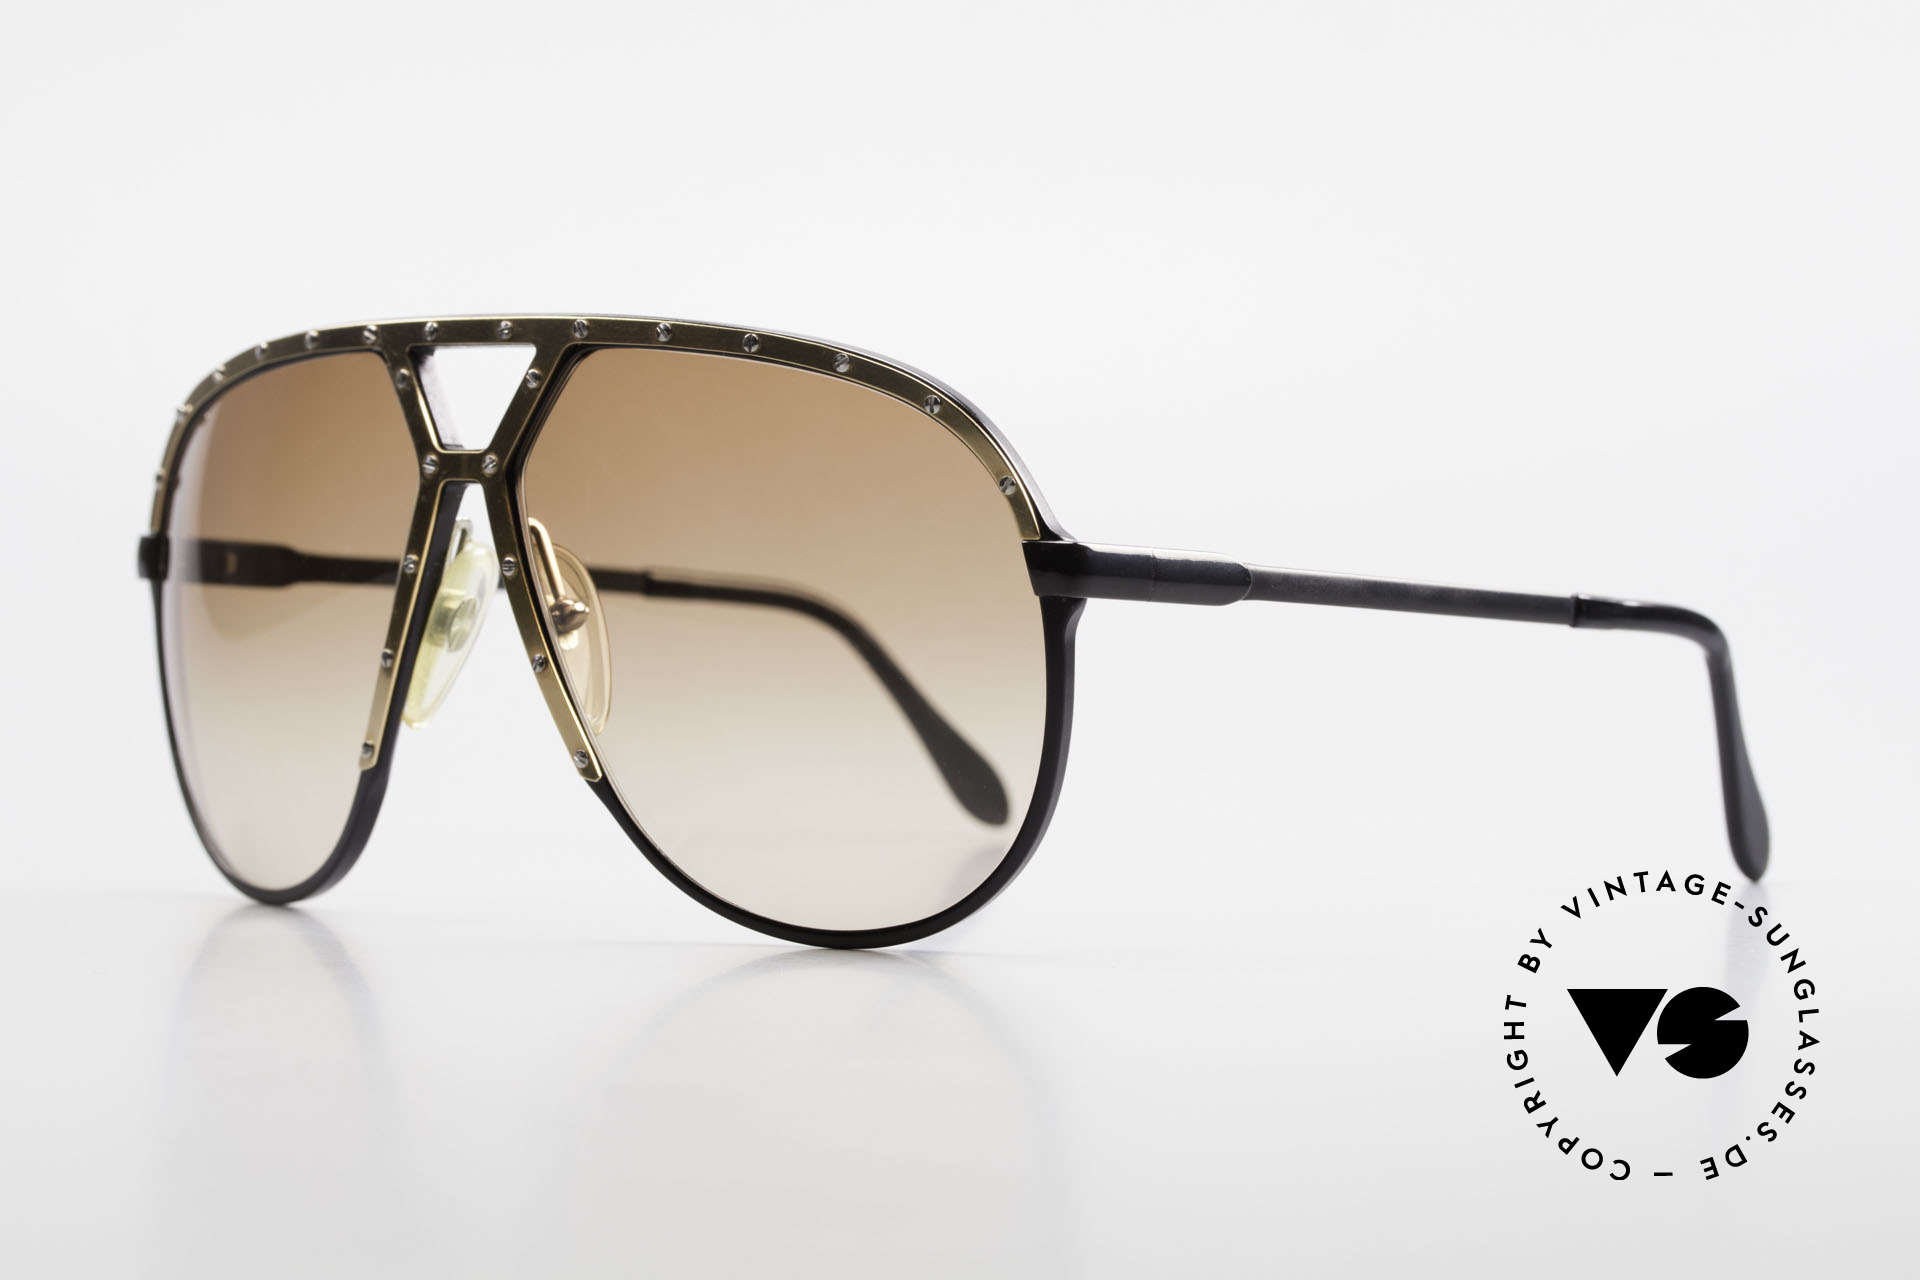 Alpina M1 Old 80's Frame No Retro Shades, can been seen on album covers, photos, concerts.., Made for Men